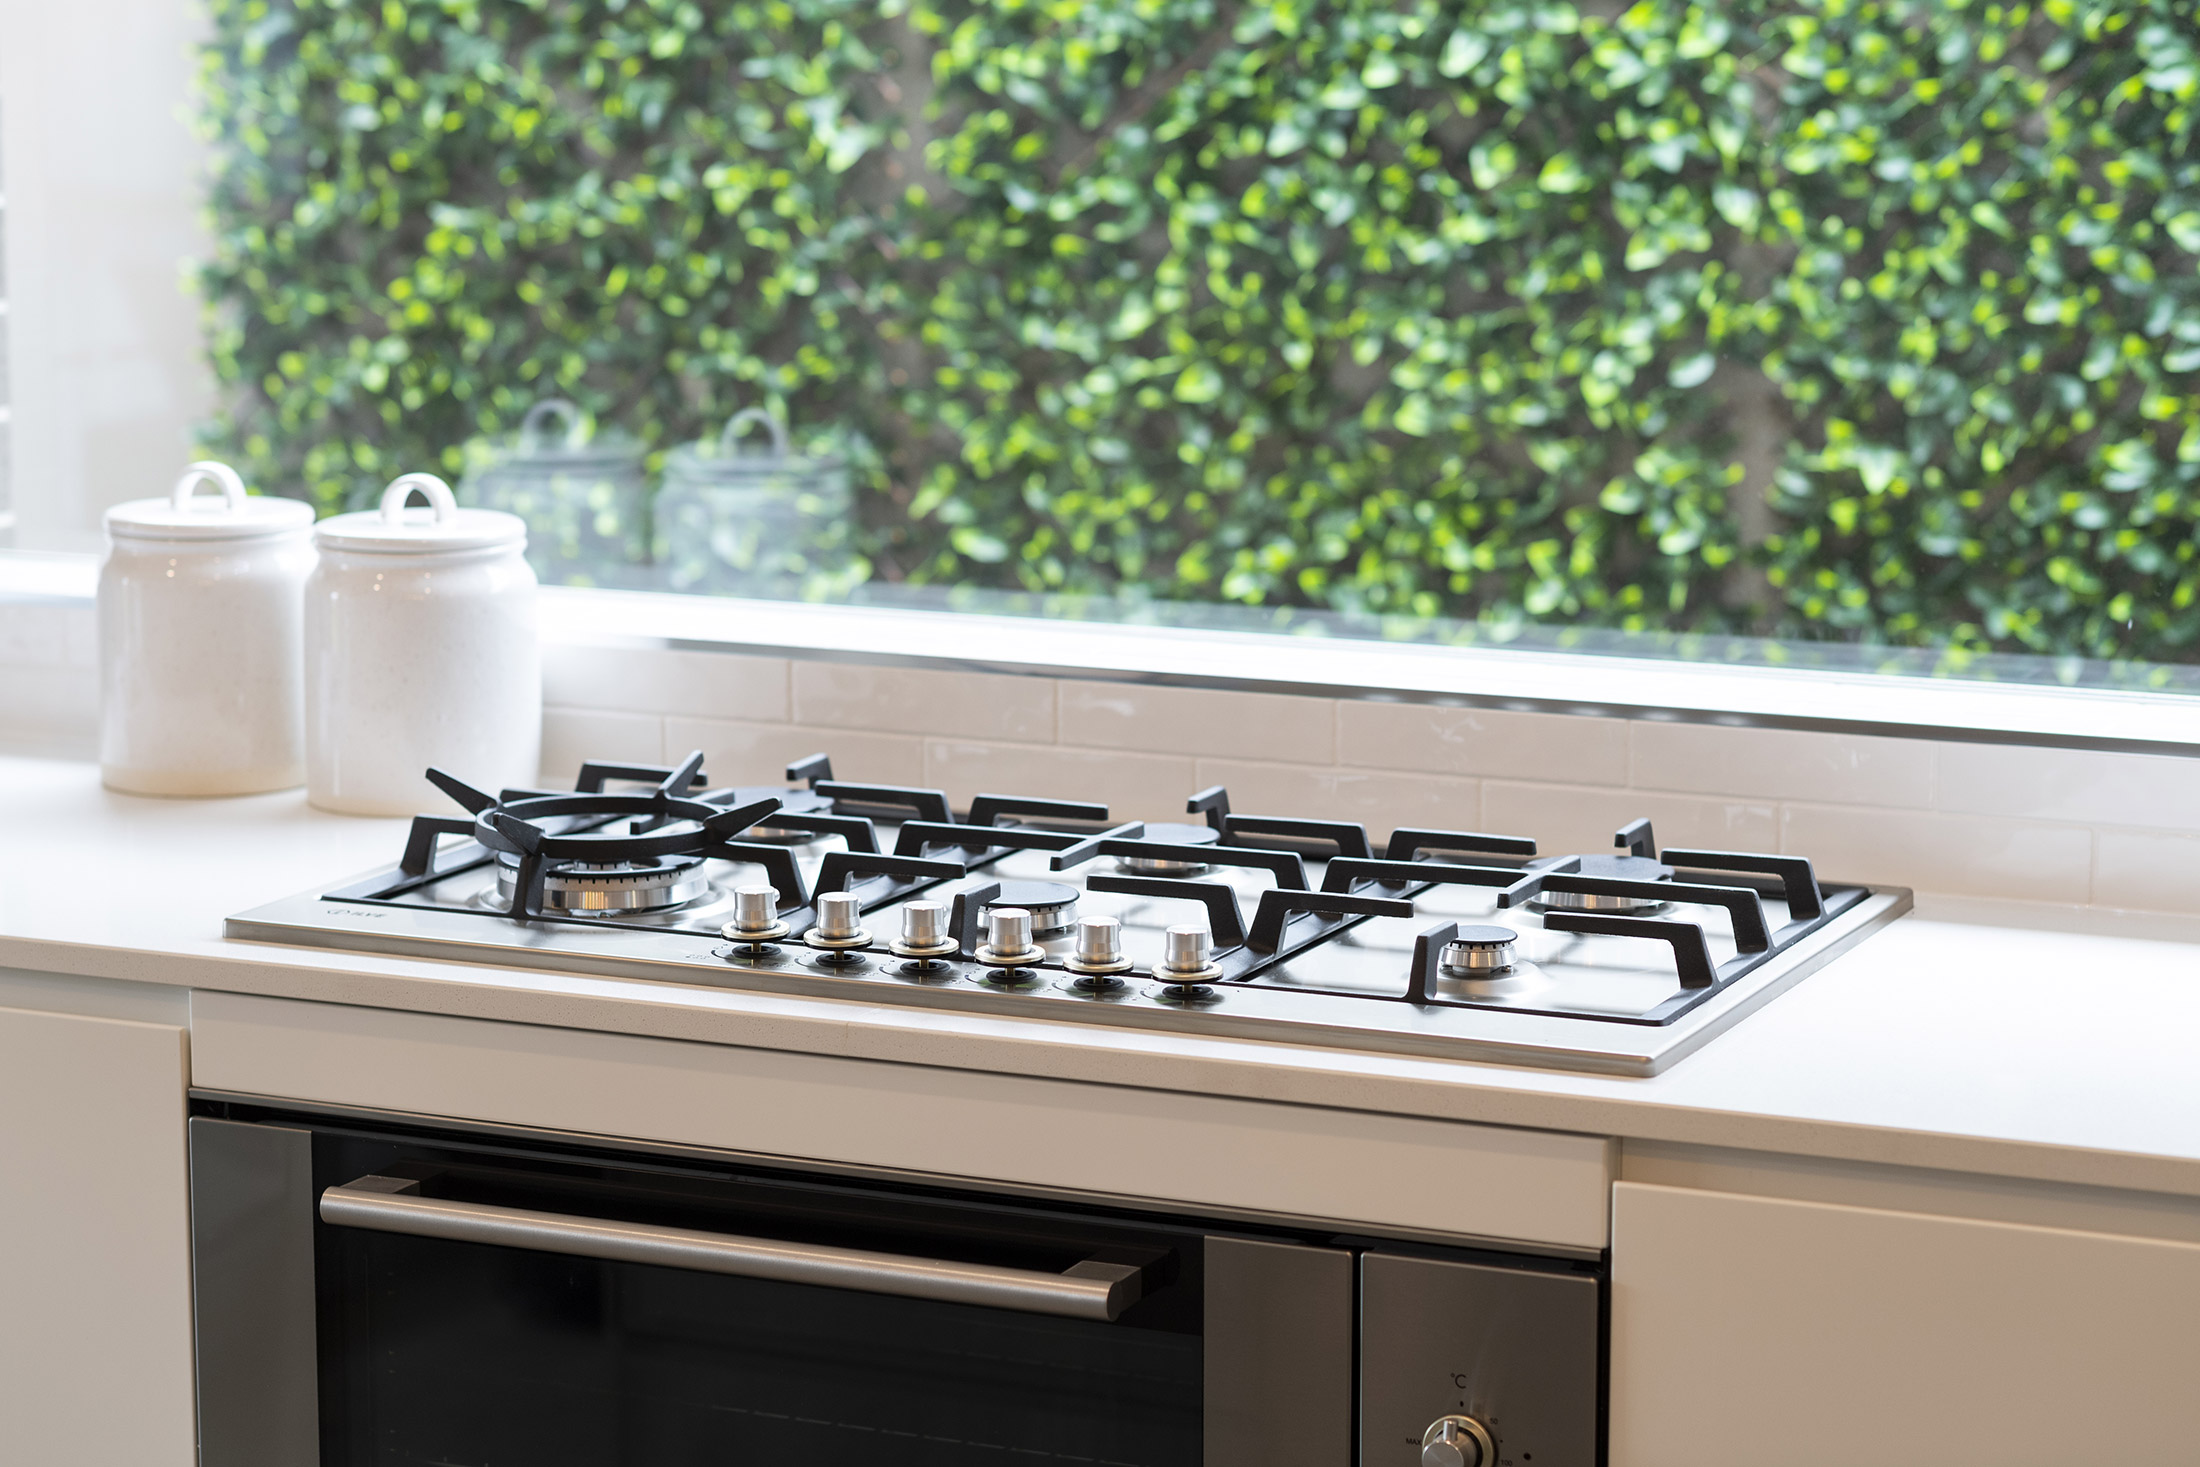 Stove built into white kitchen counters